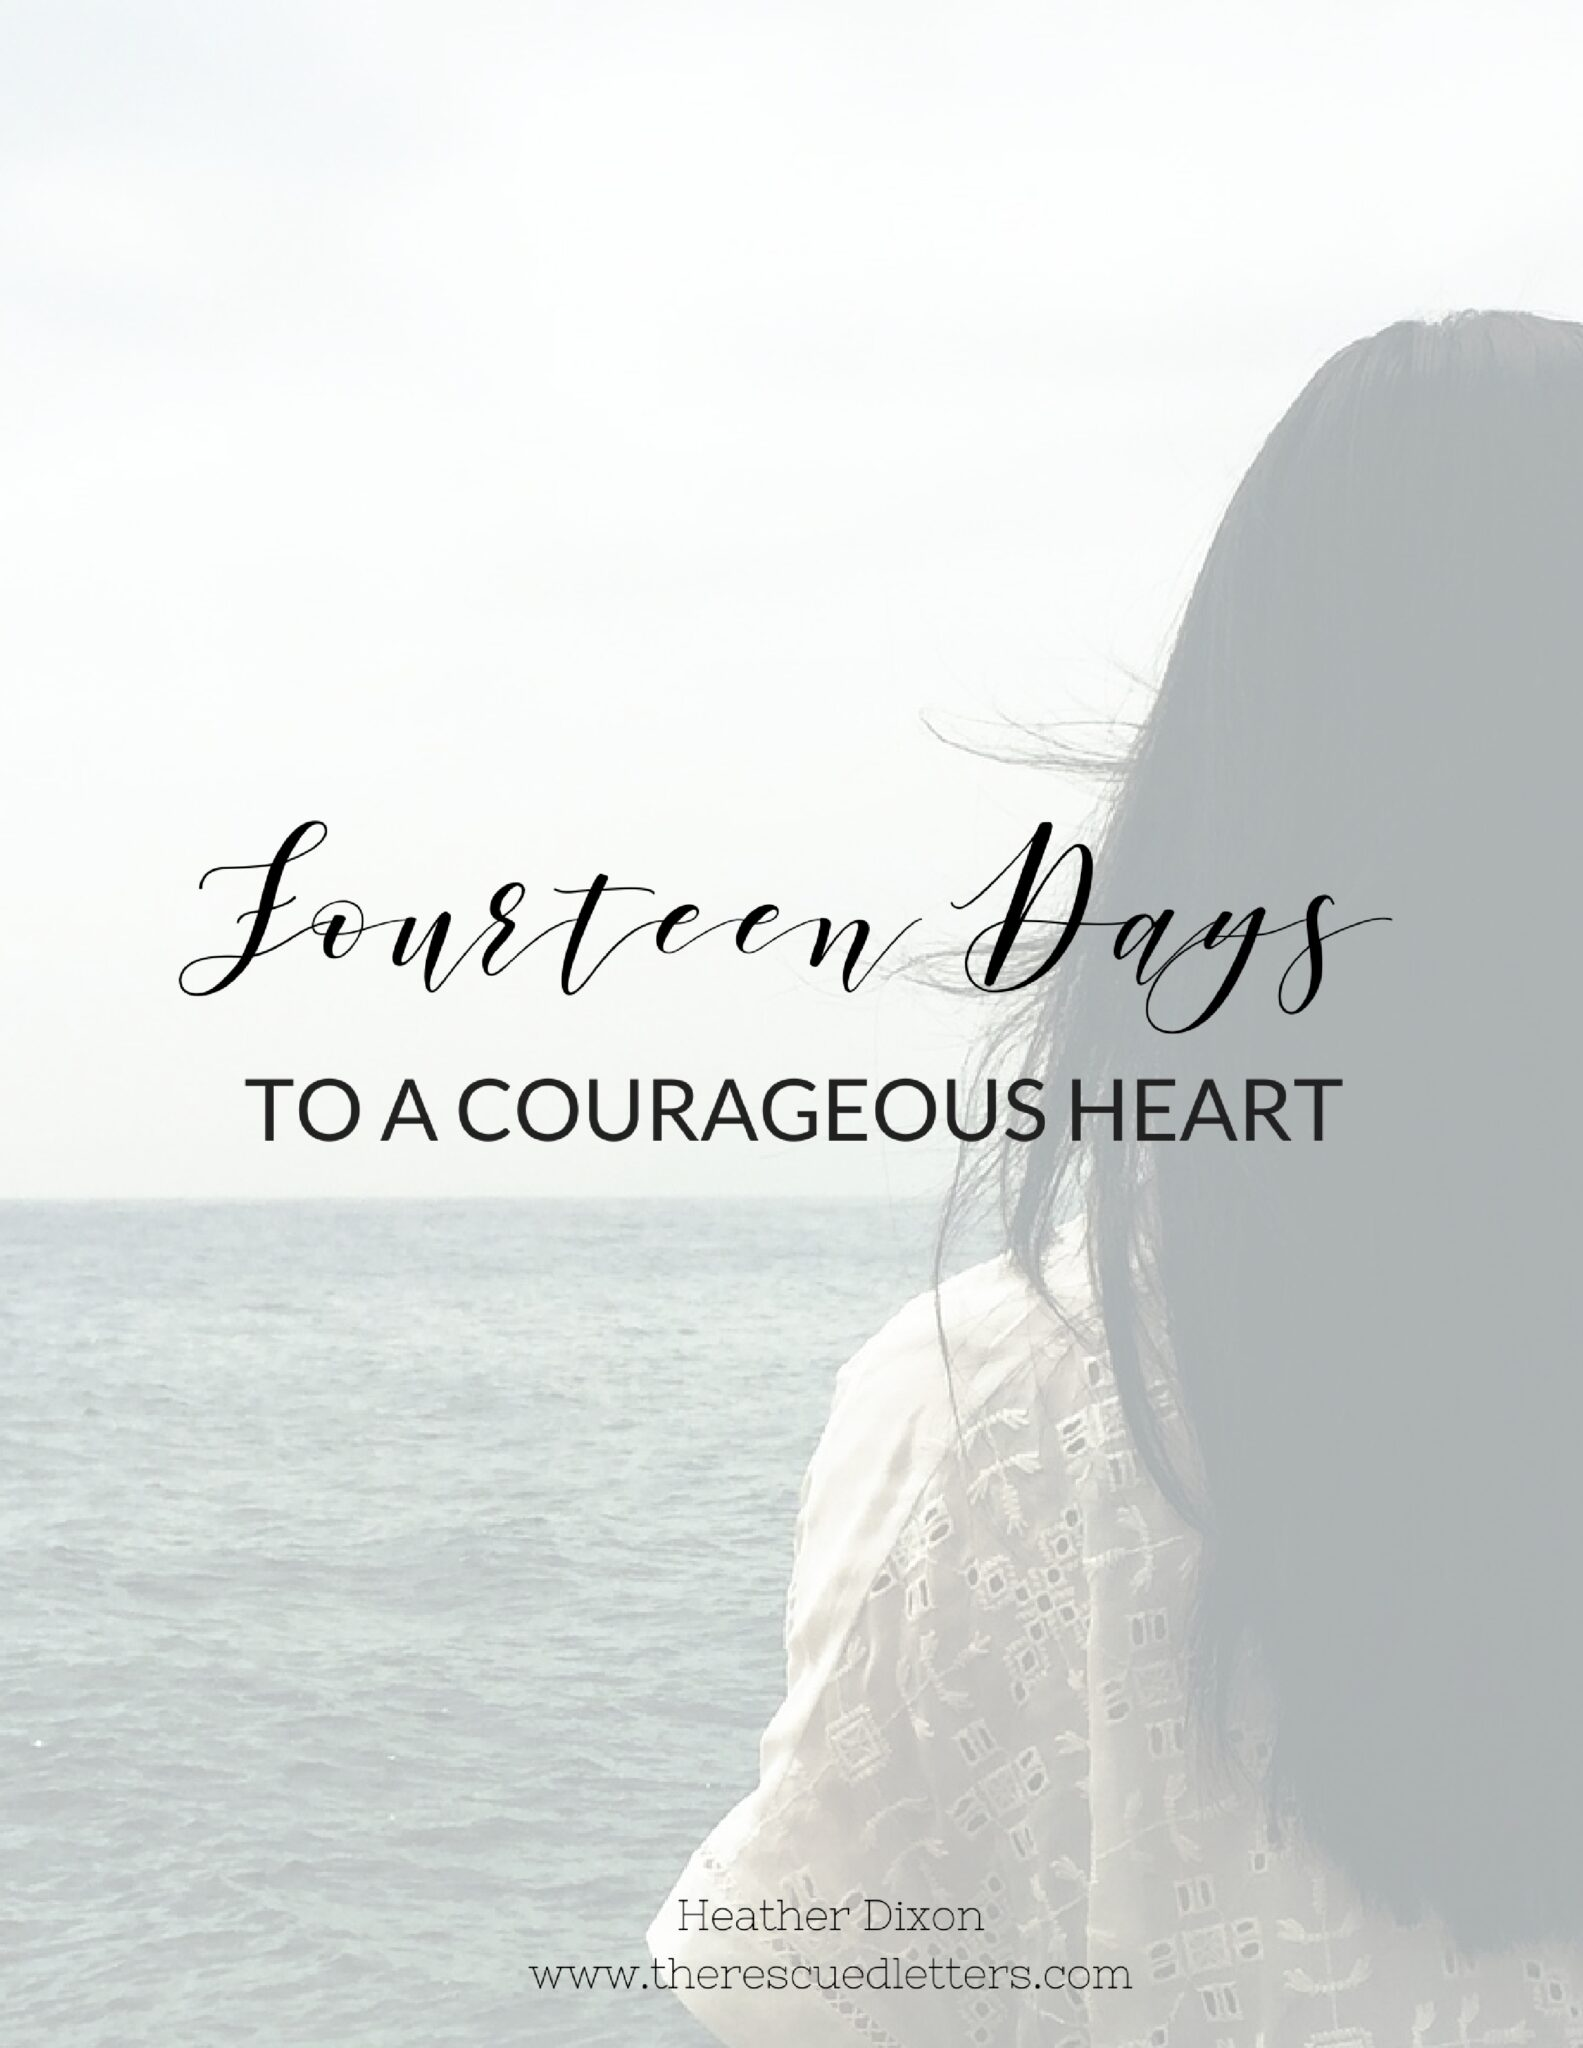 True courage has nothing to do with earthly bravery and everything to do with heavenly focus. | 14 Days to a Courageous Heart: a 14-day email challenge on courageous living | www.therescuedletters.com